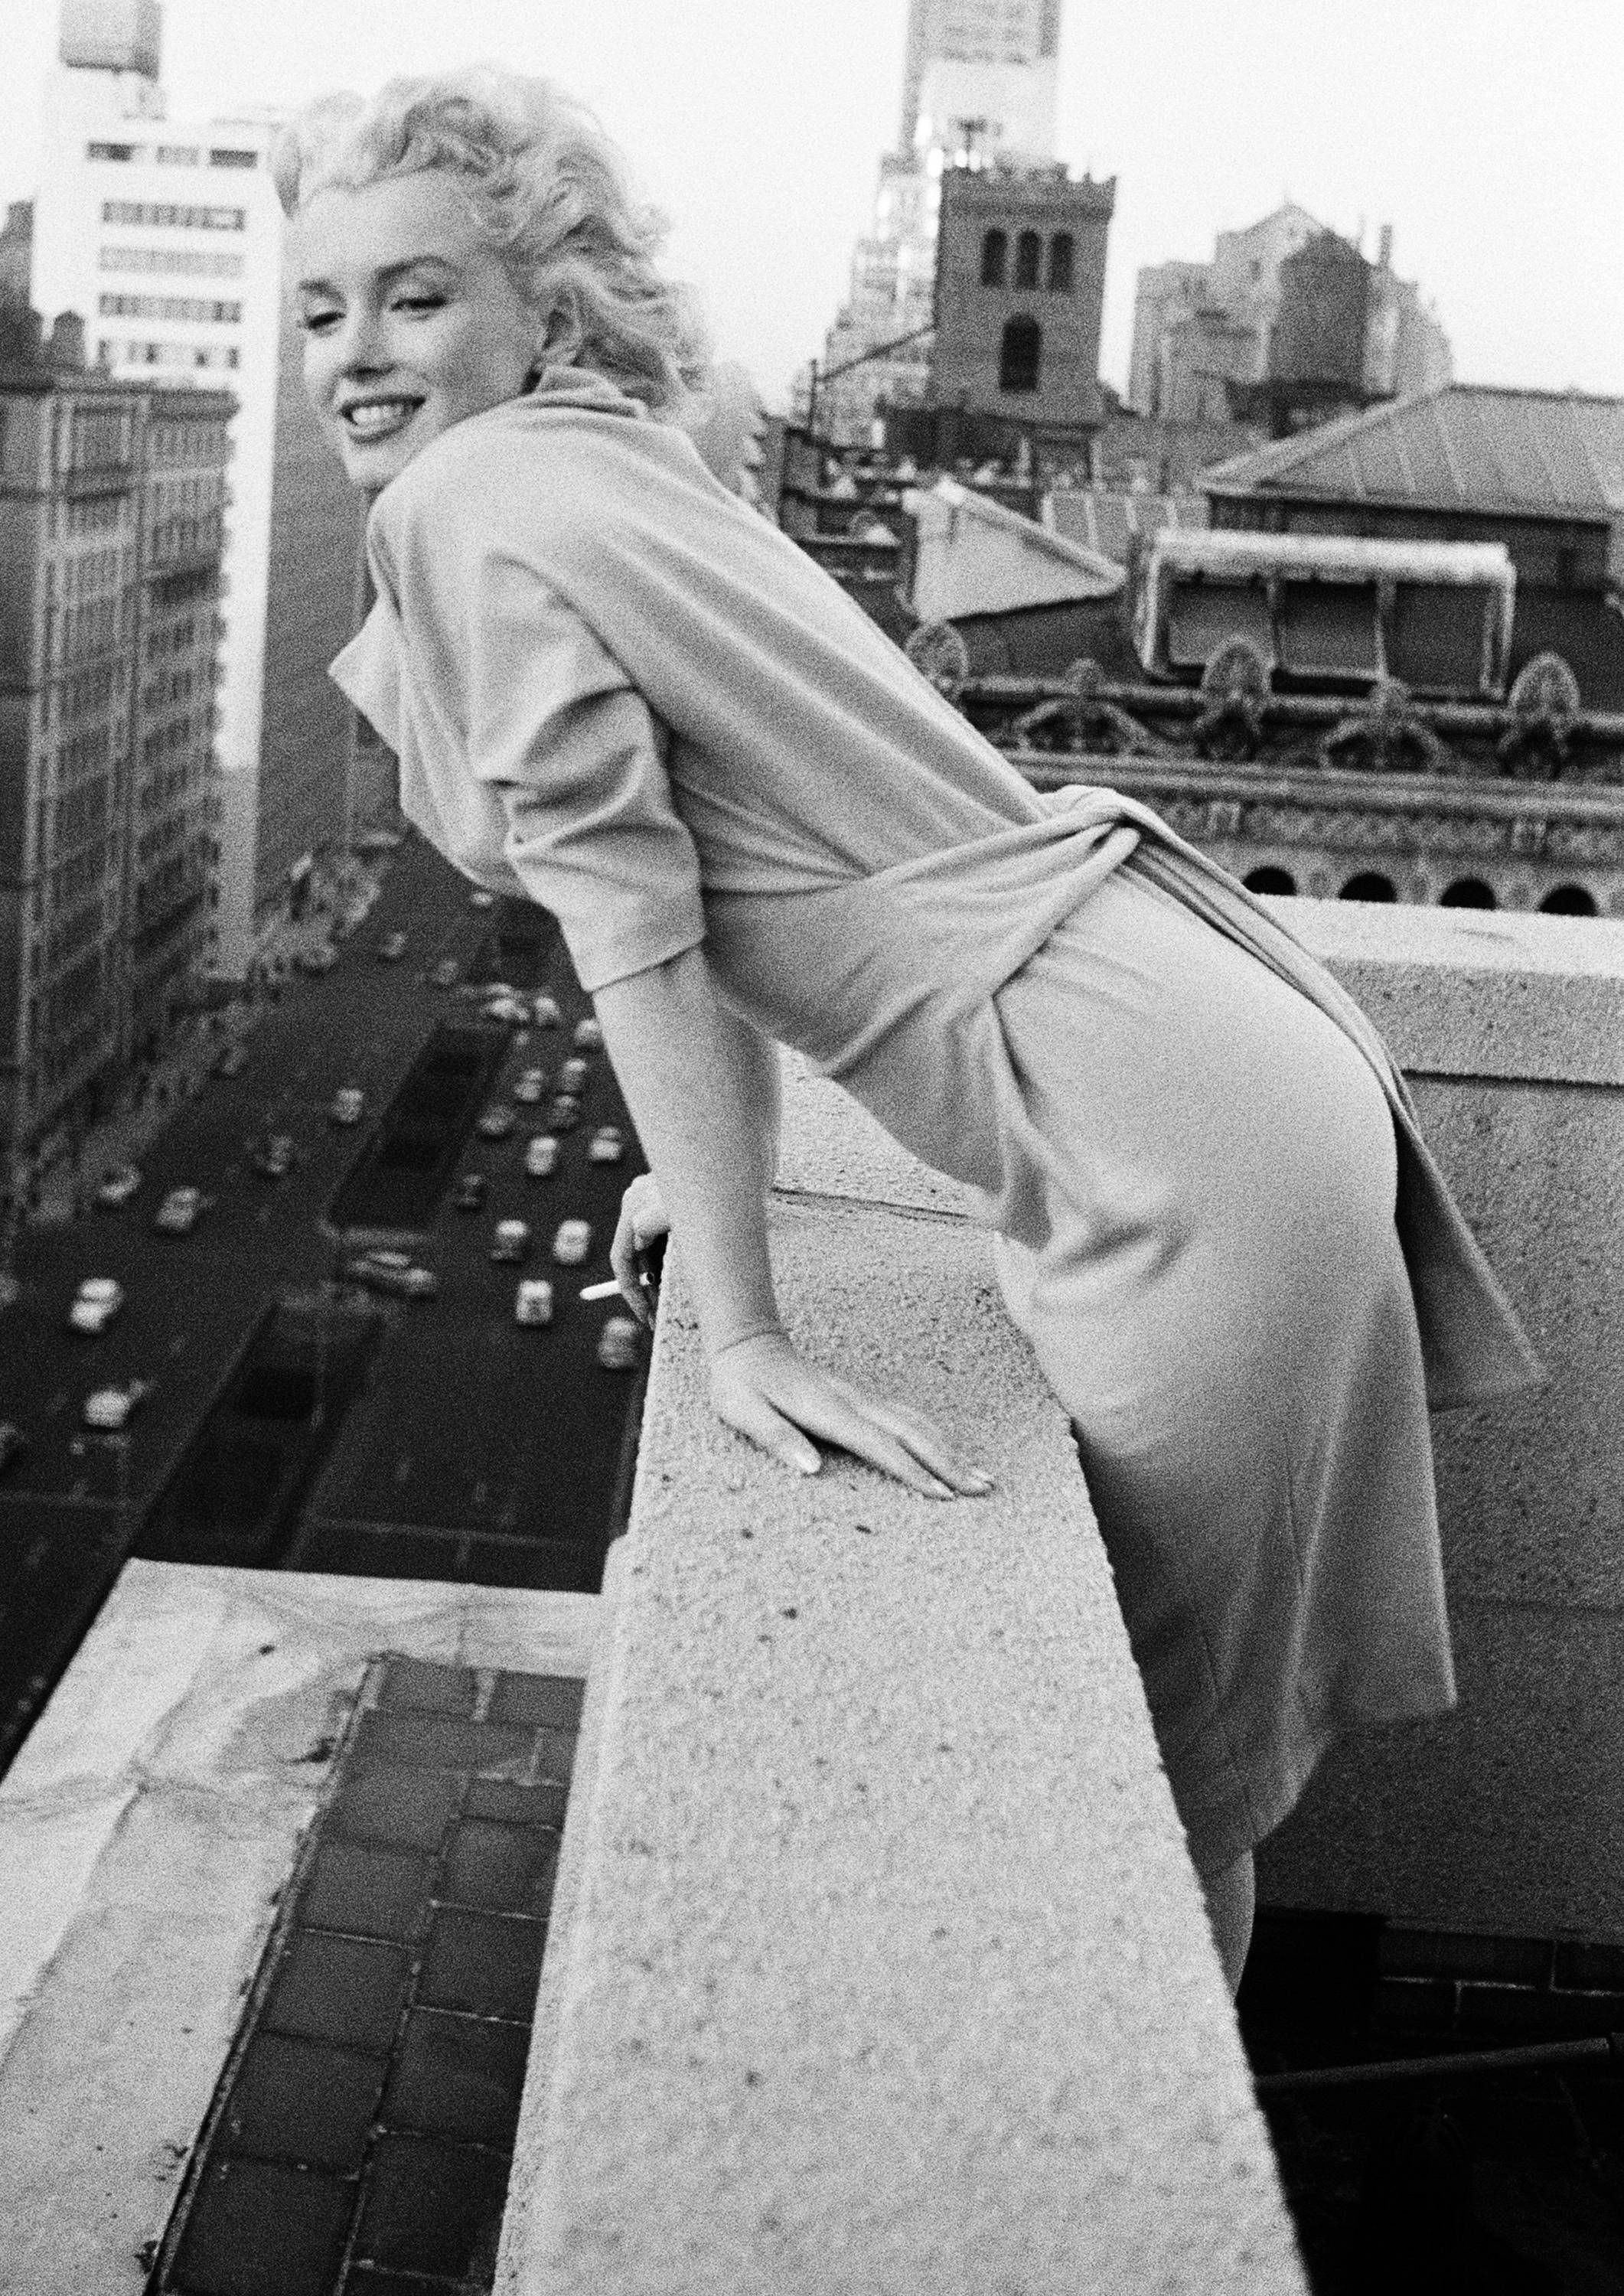 Marilyn Monroe Monochrome Photographic Print 82 (A4 Size - 210mm x ...